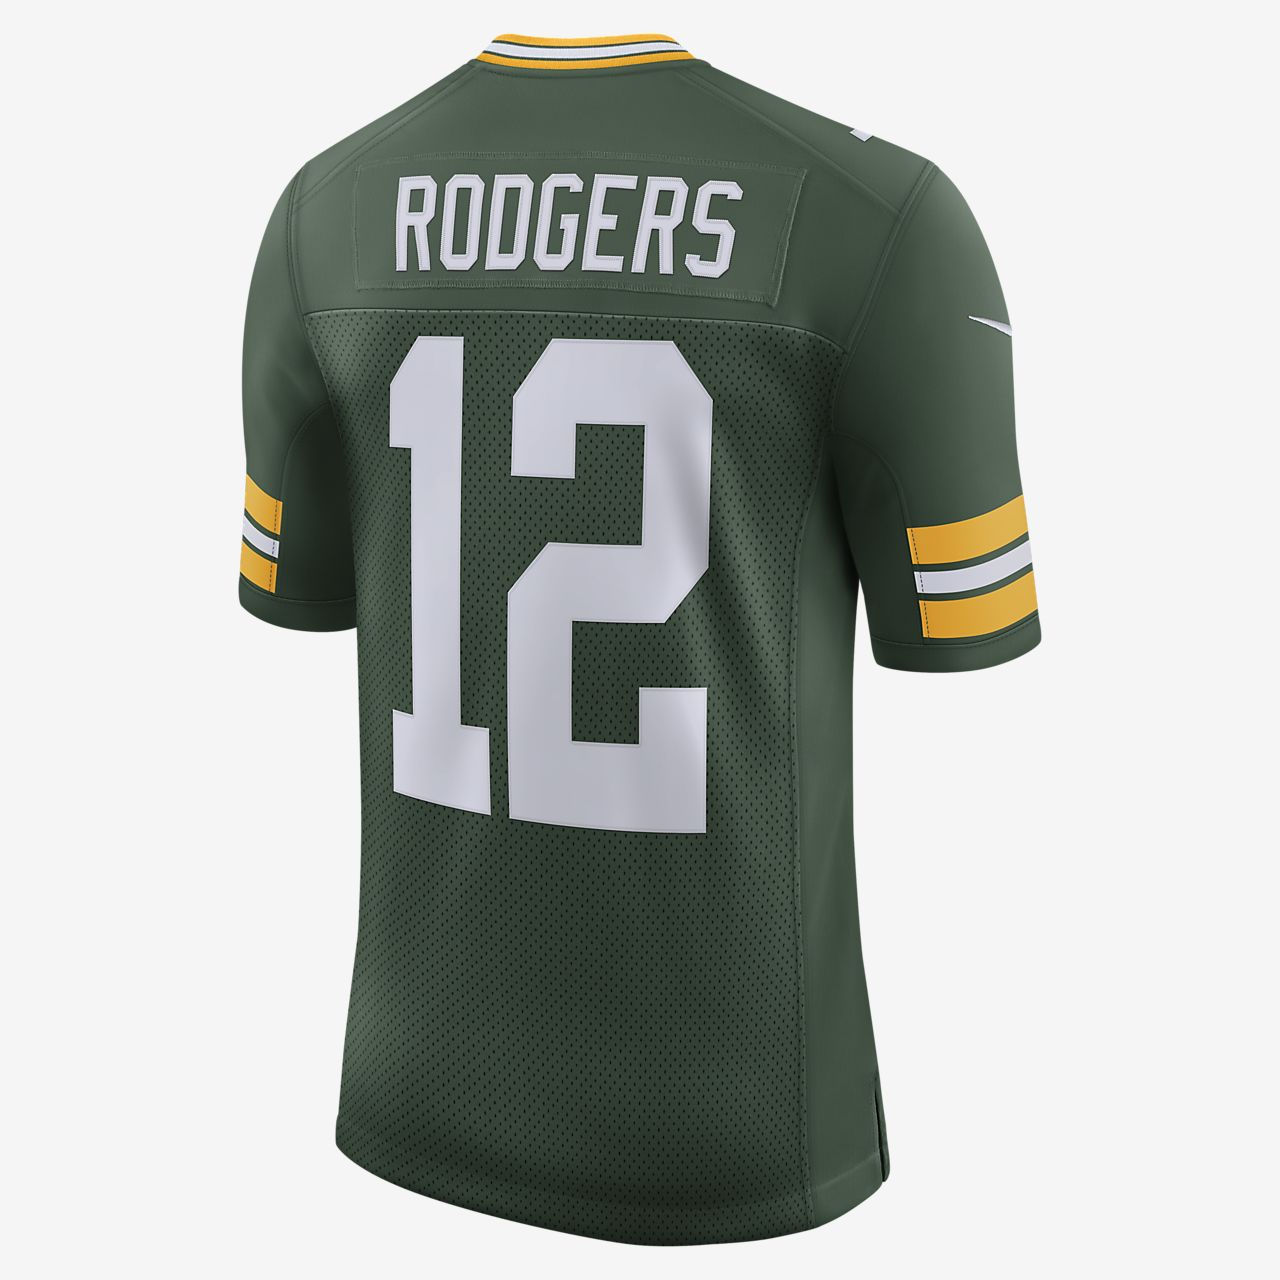 huge discount 60359 10c52 NFL Green Bay Packers Limited (Aaron Rodgers) Men's Football Jersey